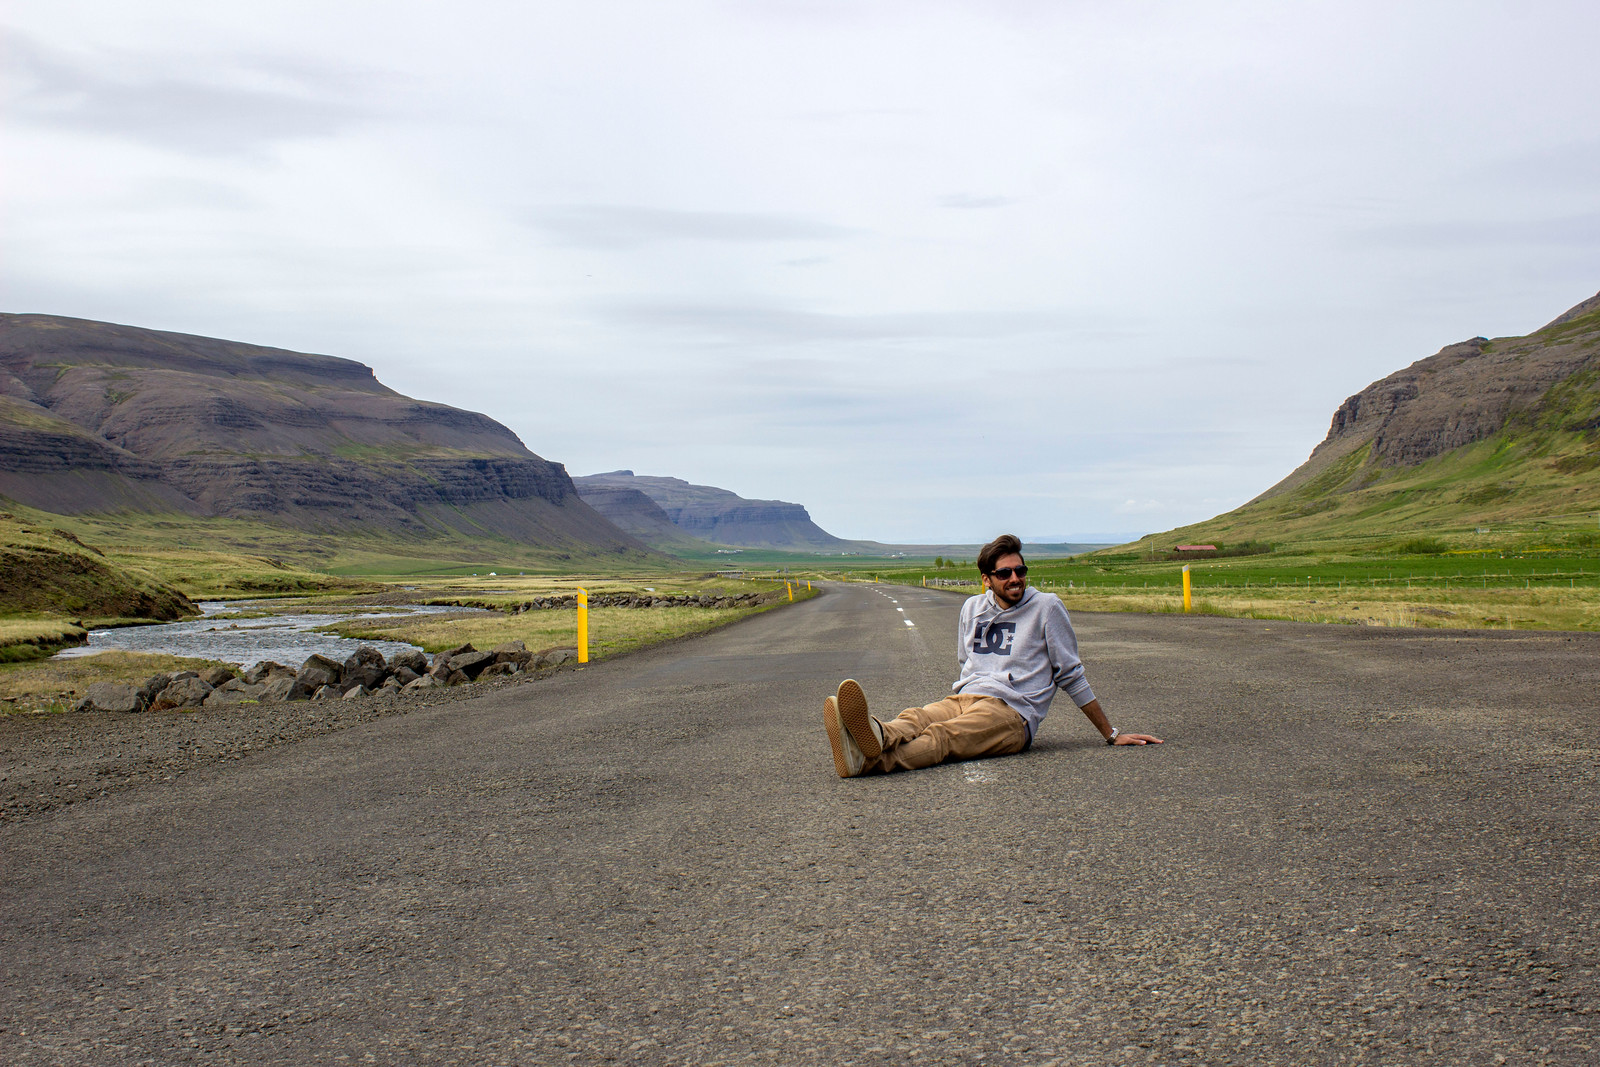 Iceland 2 Week Itinerary - A Complete Travel Guide - Iceland Travel Itinerary - Westfjords